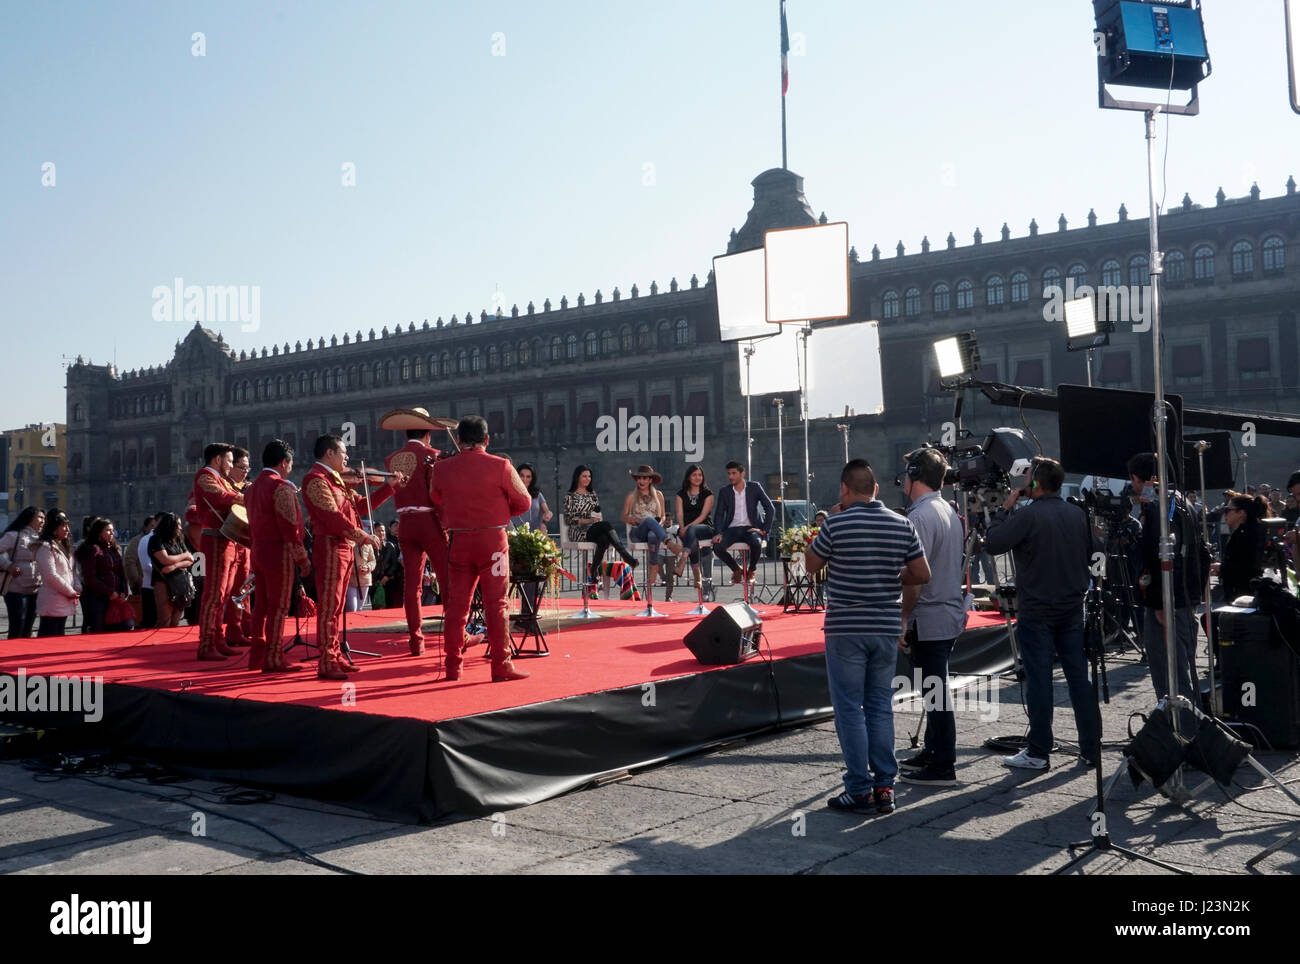 The filming of the Despierta America morning television show in the Zocalo in Mexico City, Mexico - Stock Image